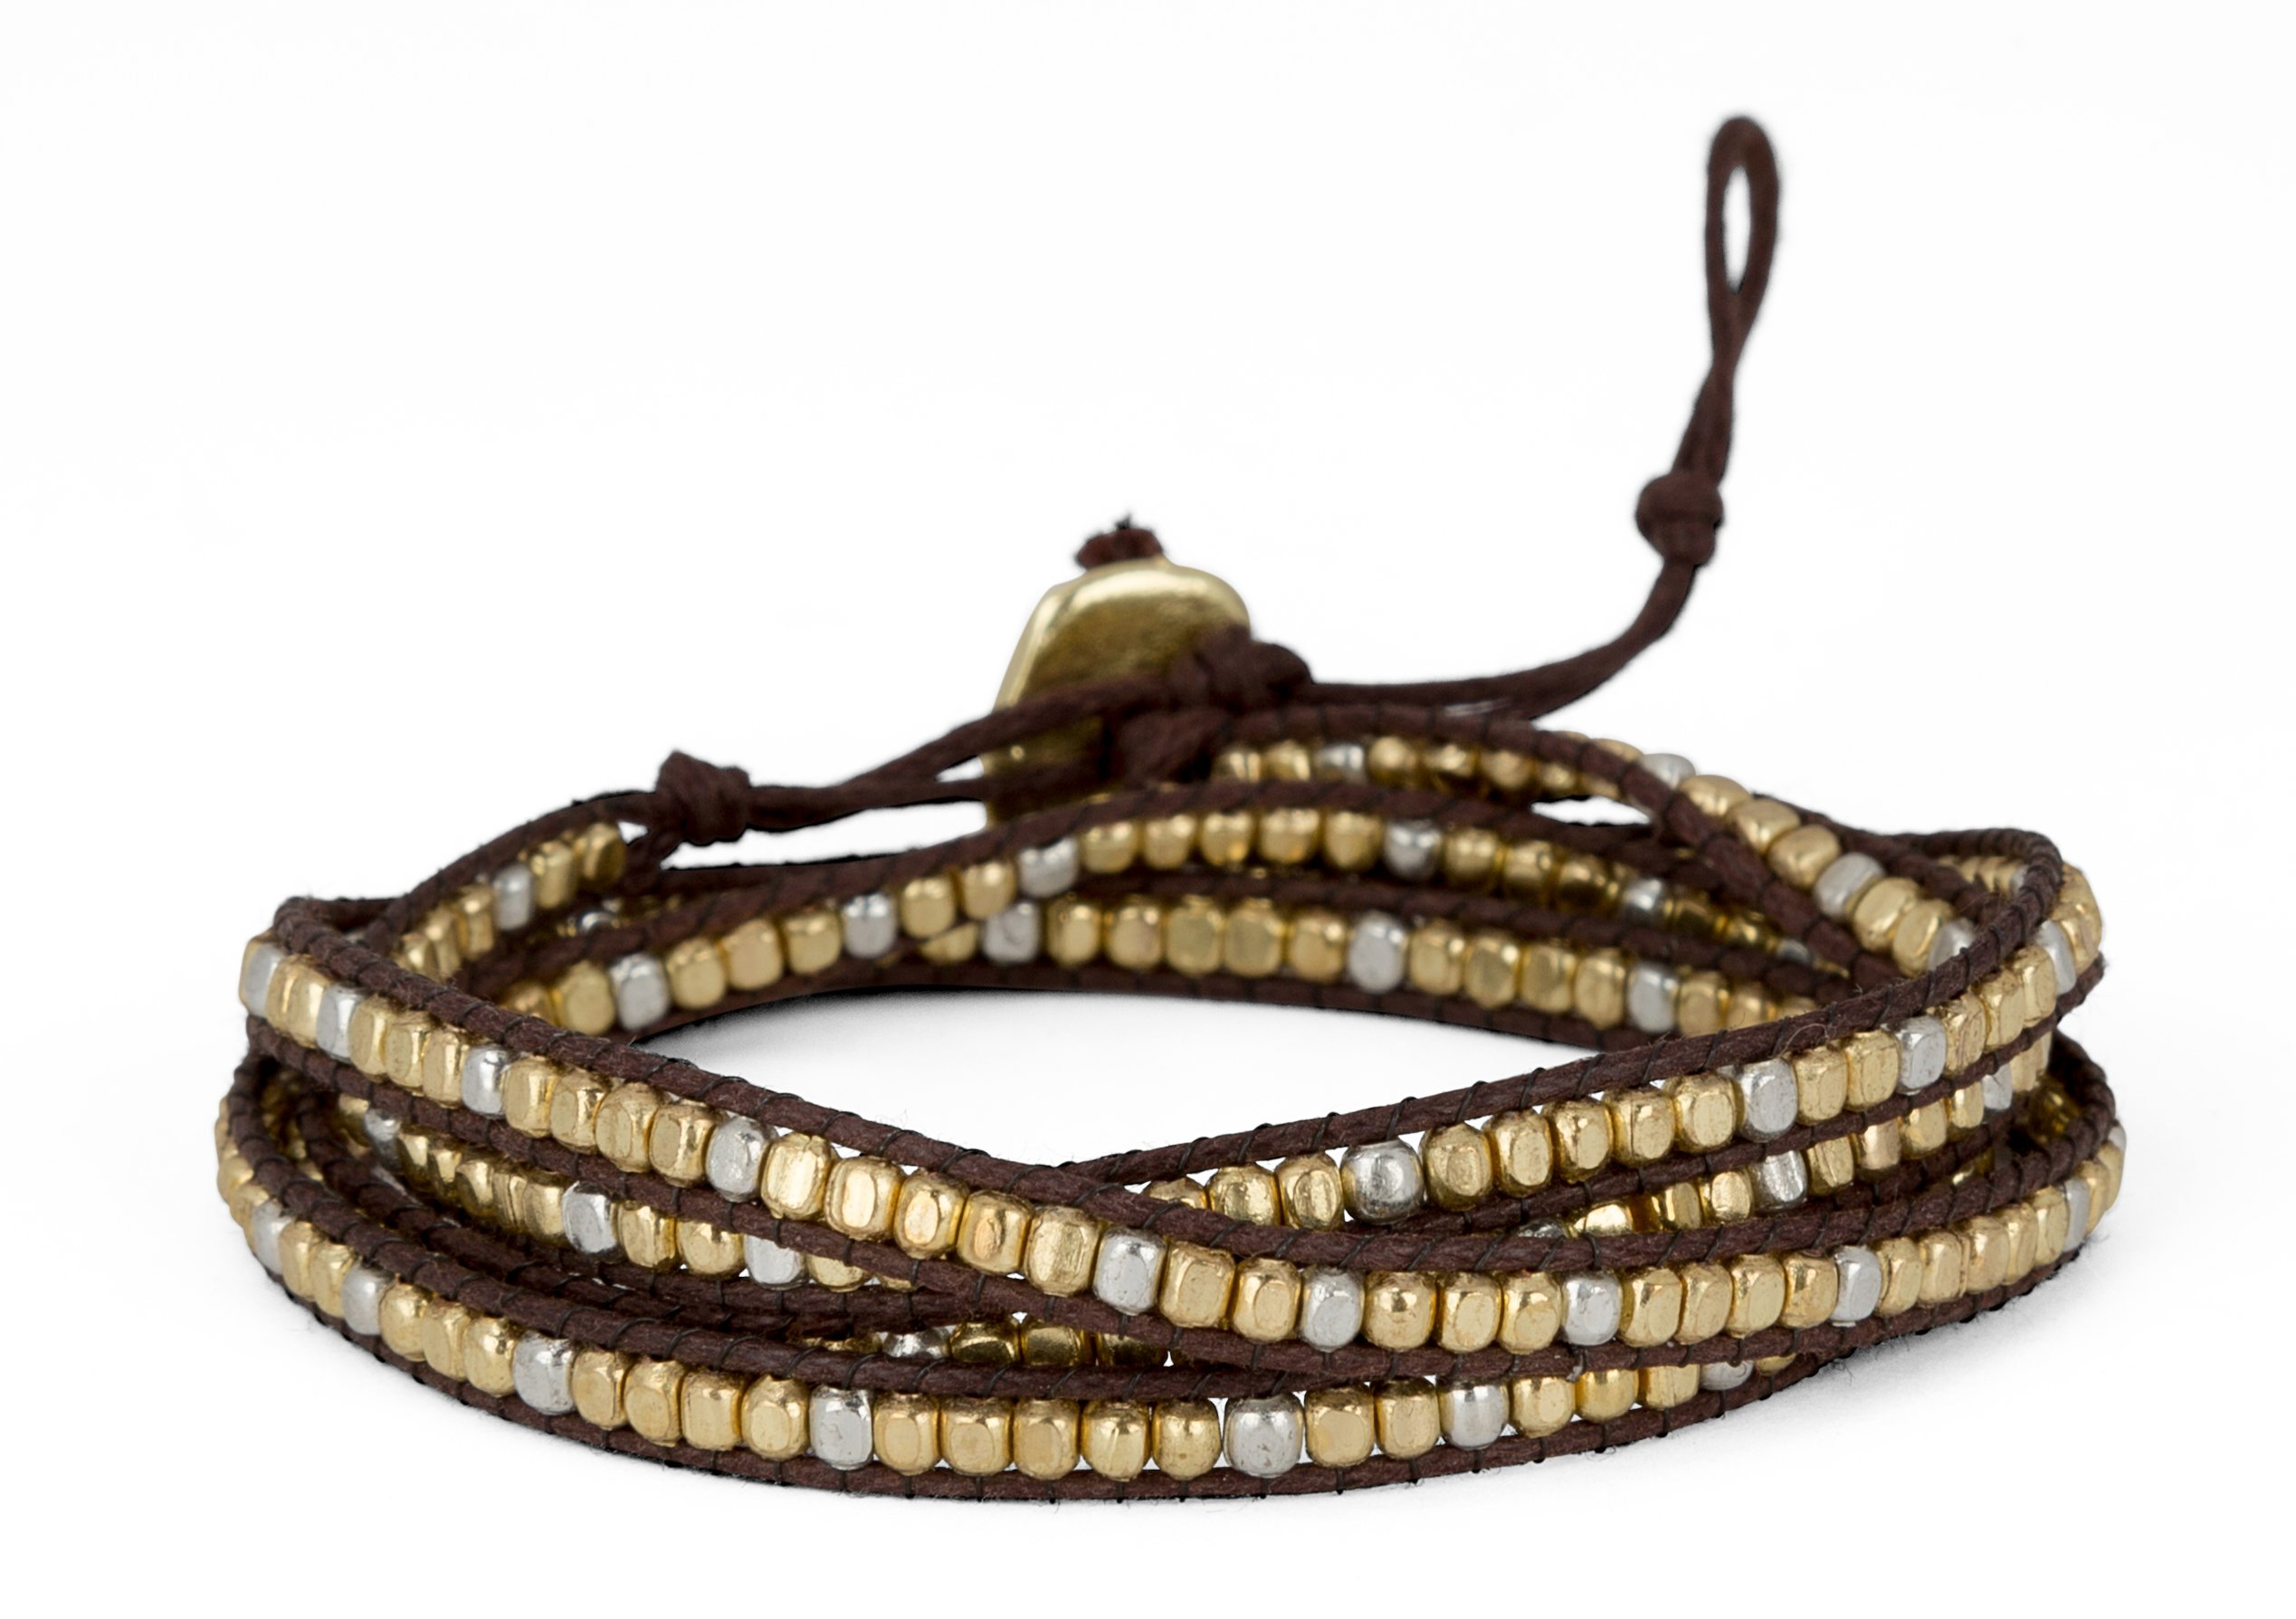 New! Handmade Boho 4 Wrap Bracelet Gold and Silver and Brown for Women | SPUNKYsoul Collection